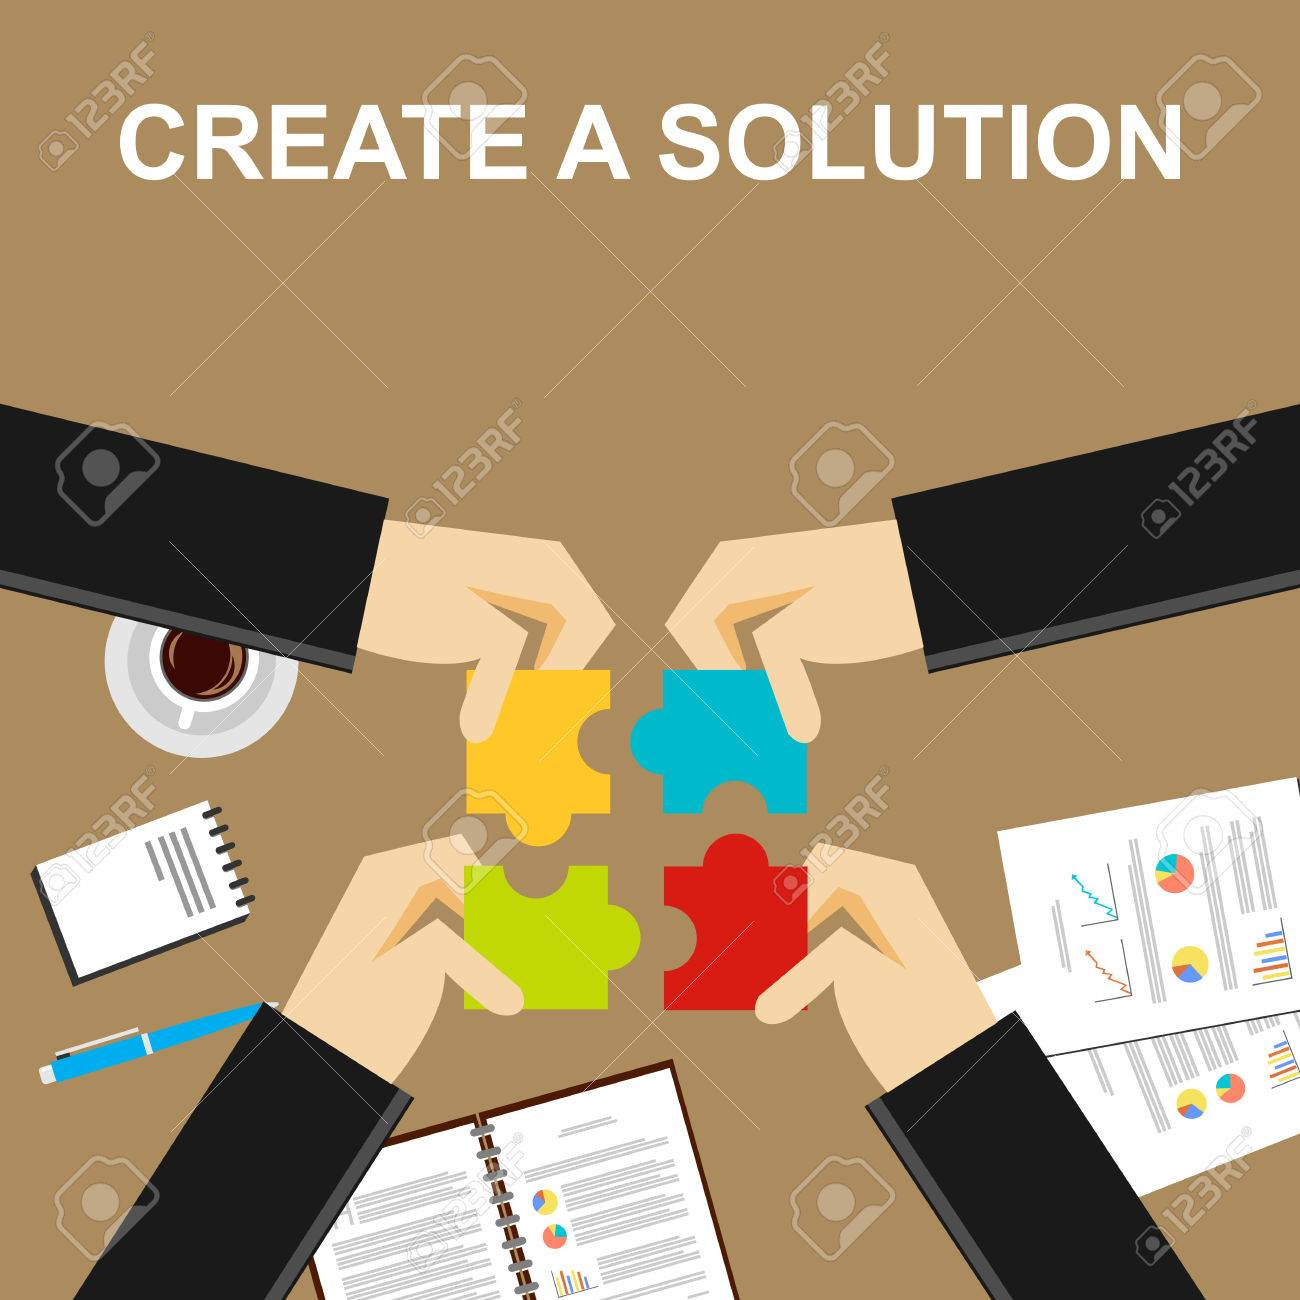 define images stock pictures royalty define photos and define create a solution illustration making a solution concept business people puzzle